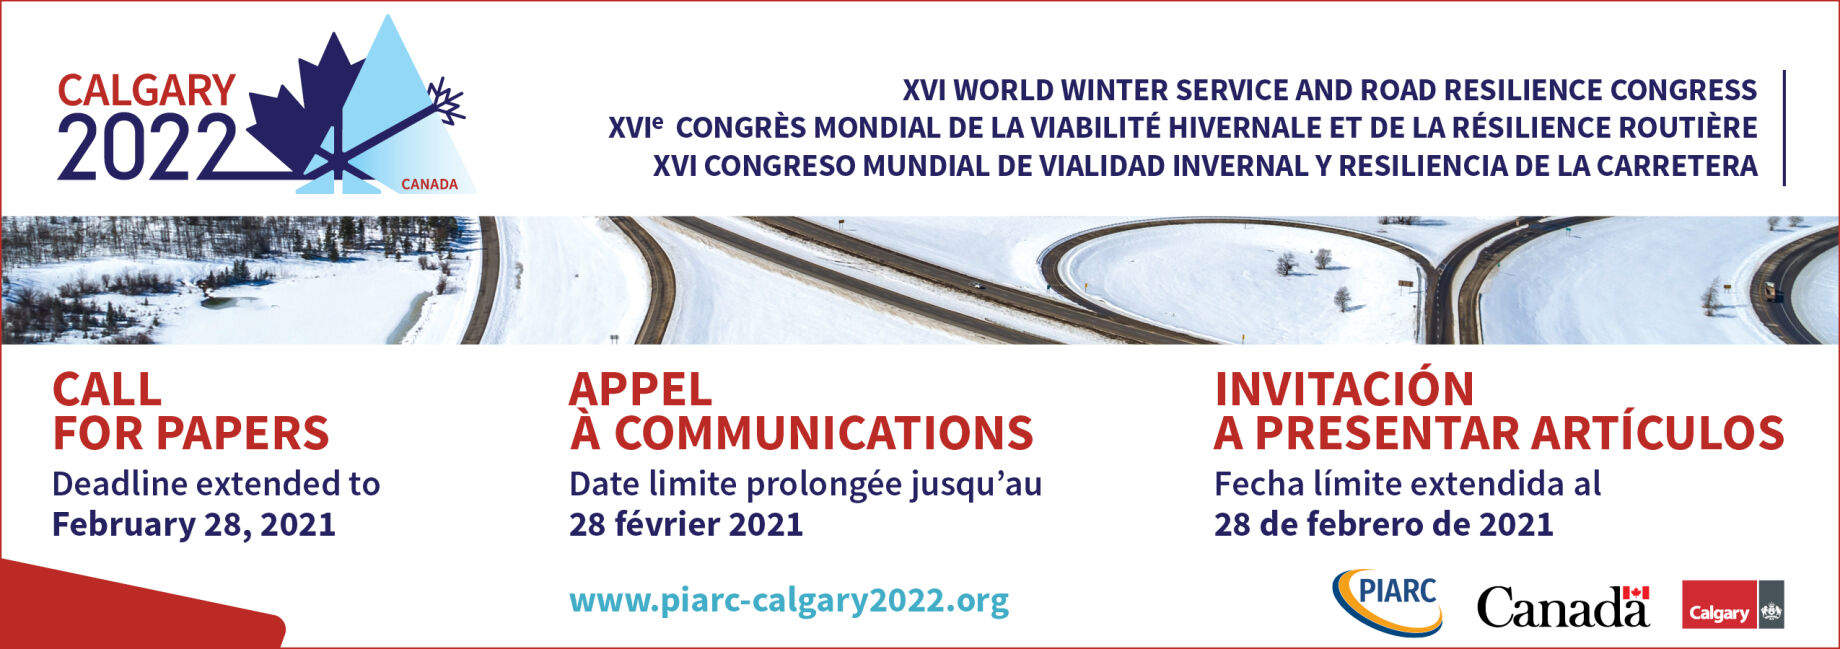 Last call! Don't miss this coming Sunday's deadline to submit your Winter Service or resilience abstract to PIARC in English, French or Spanish!